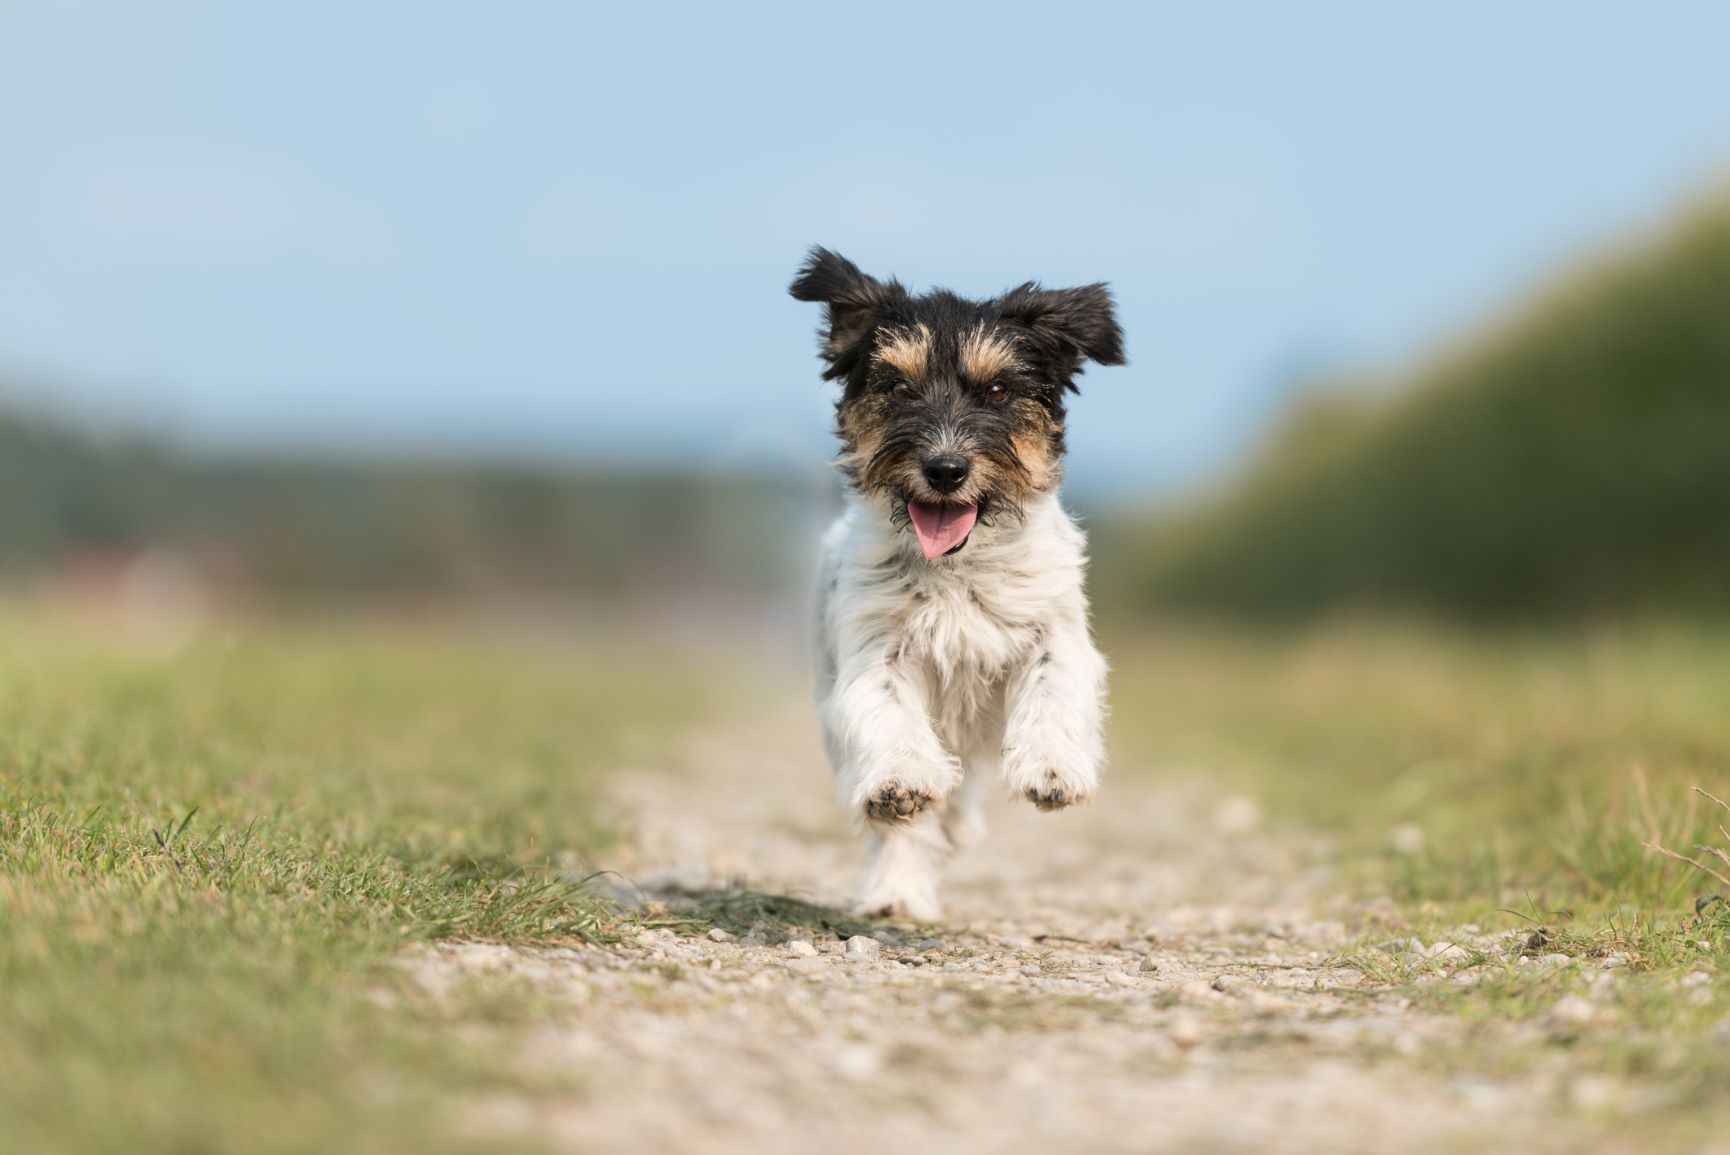 jack-russell-terrier-female-years-old-cute-little-dog-running-fast-and-joyfully-on-a-road-gravel-path-beside-the-green-meadow-against-a-blue-sky-in-springjpg